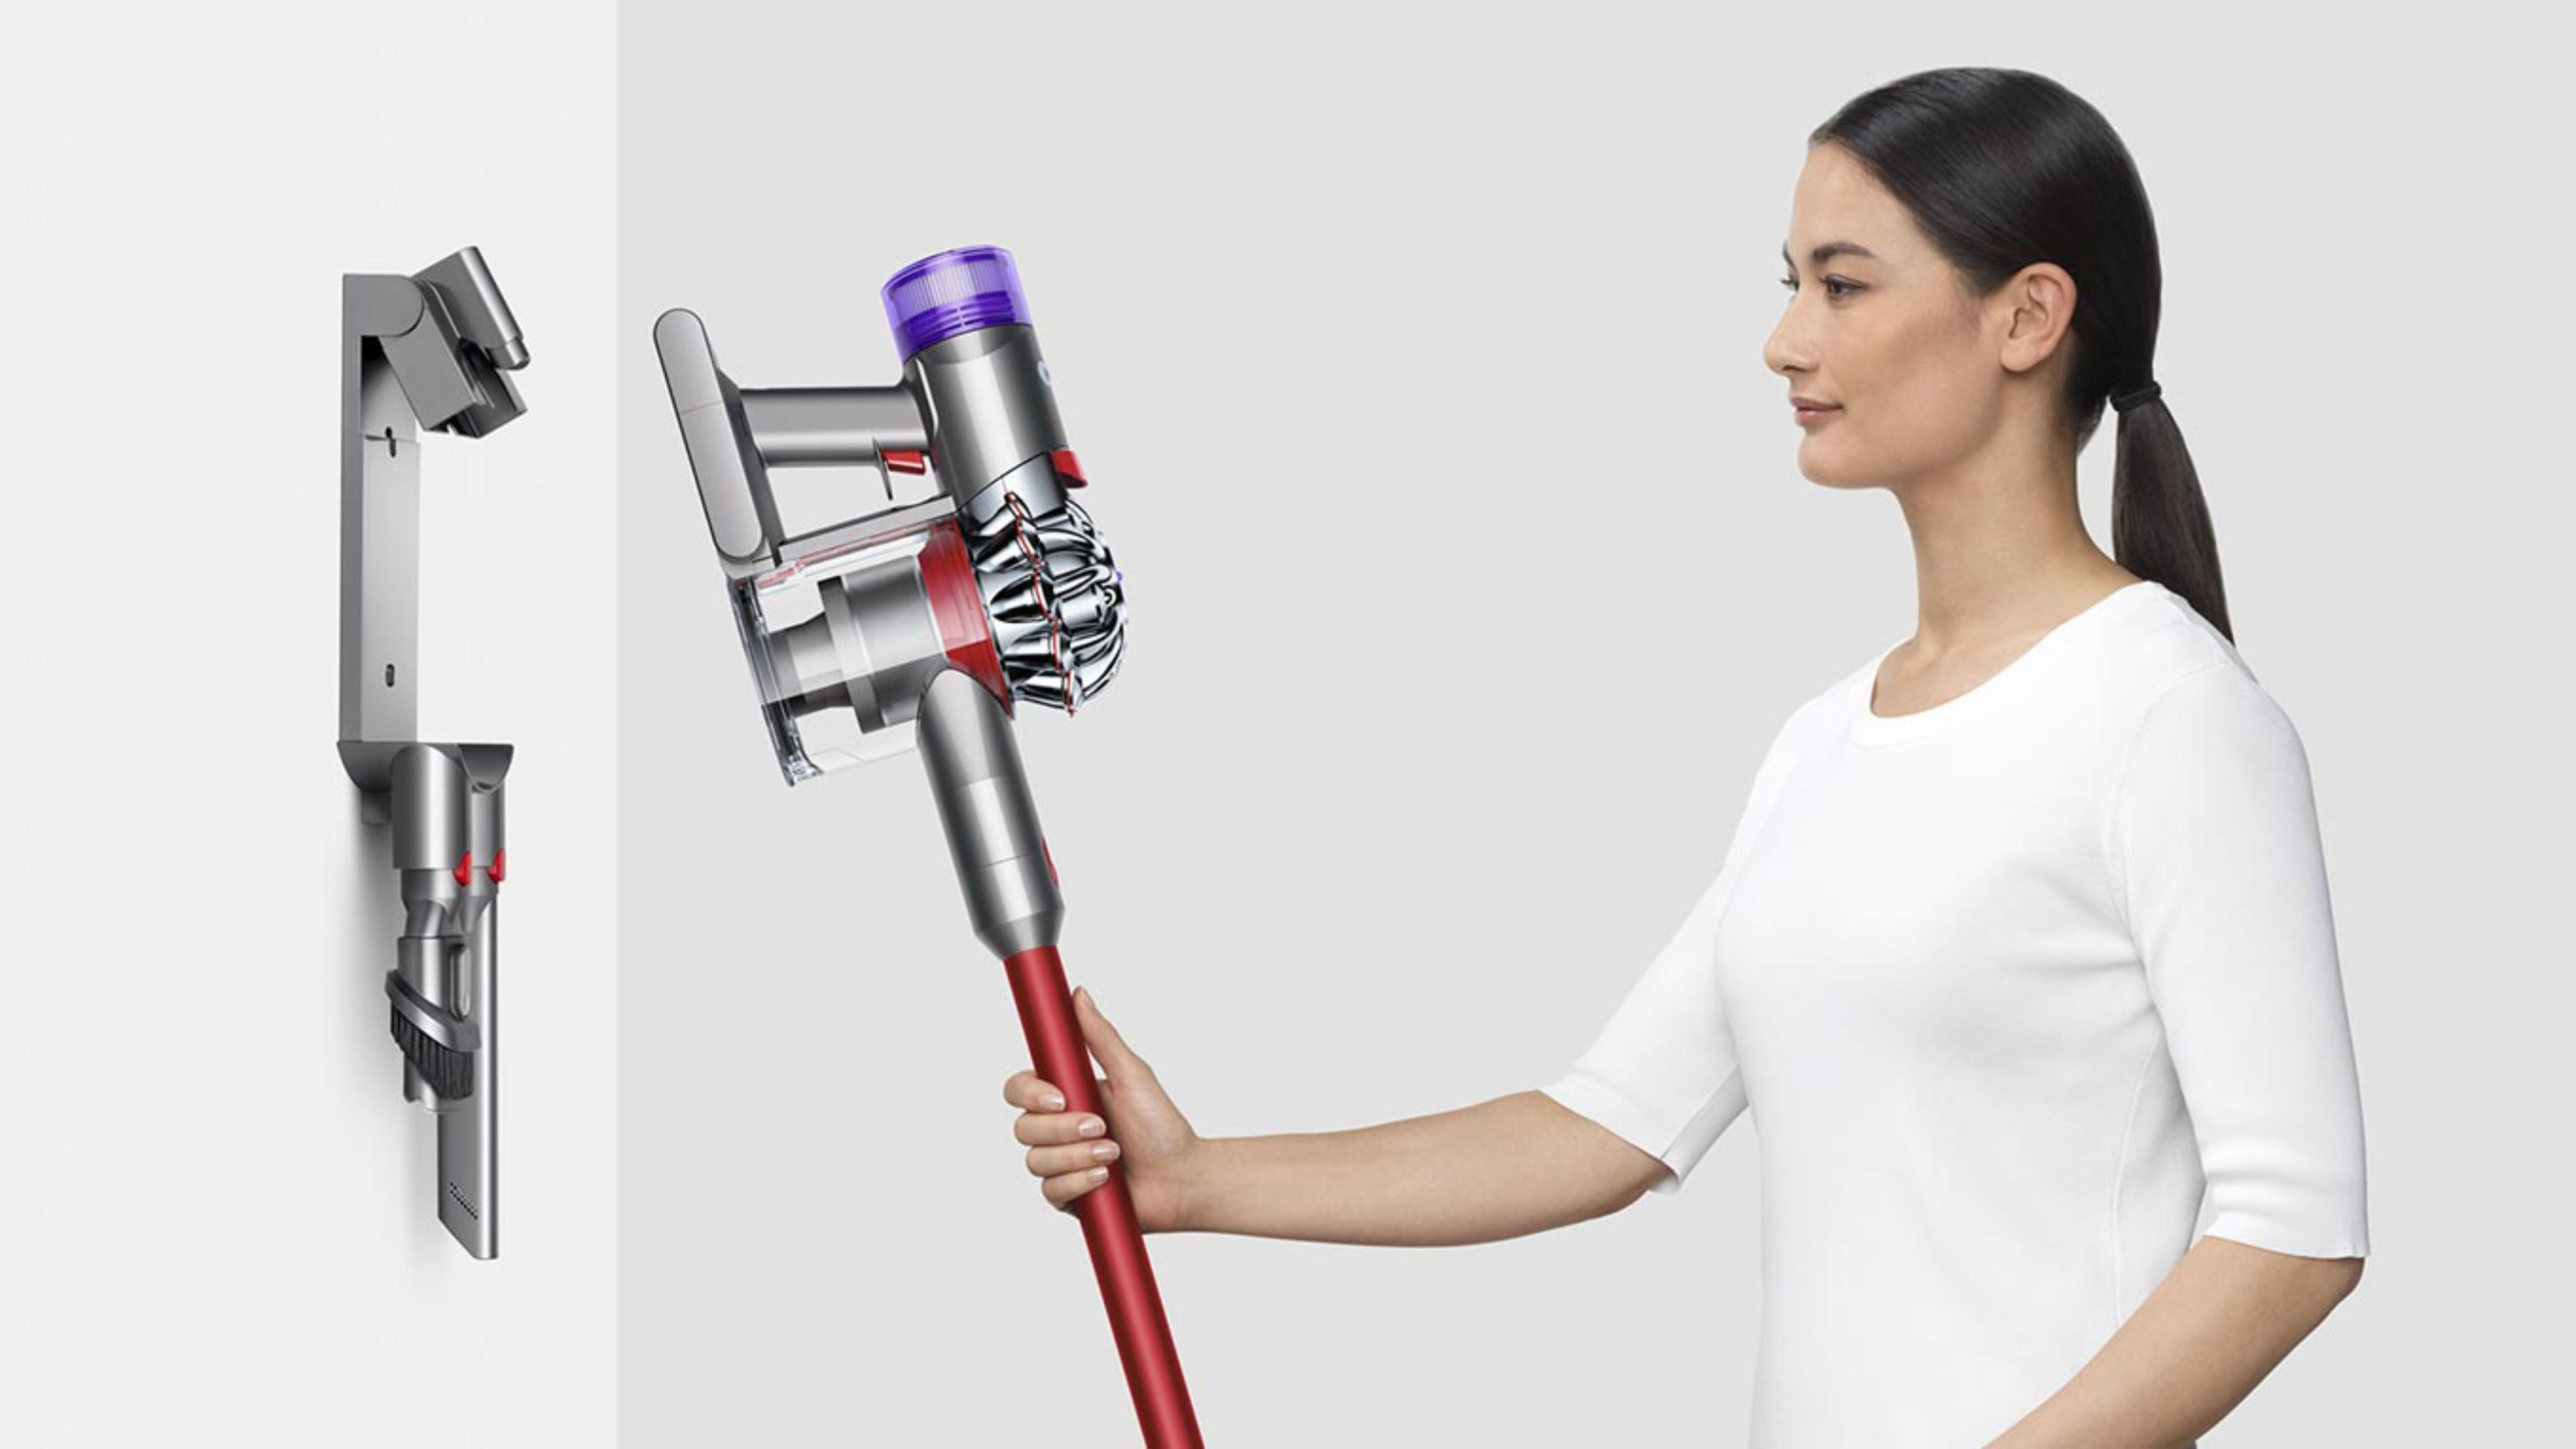 A lady returning the Dyson V8™ vacuum to the charging dock